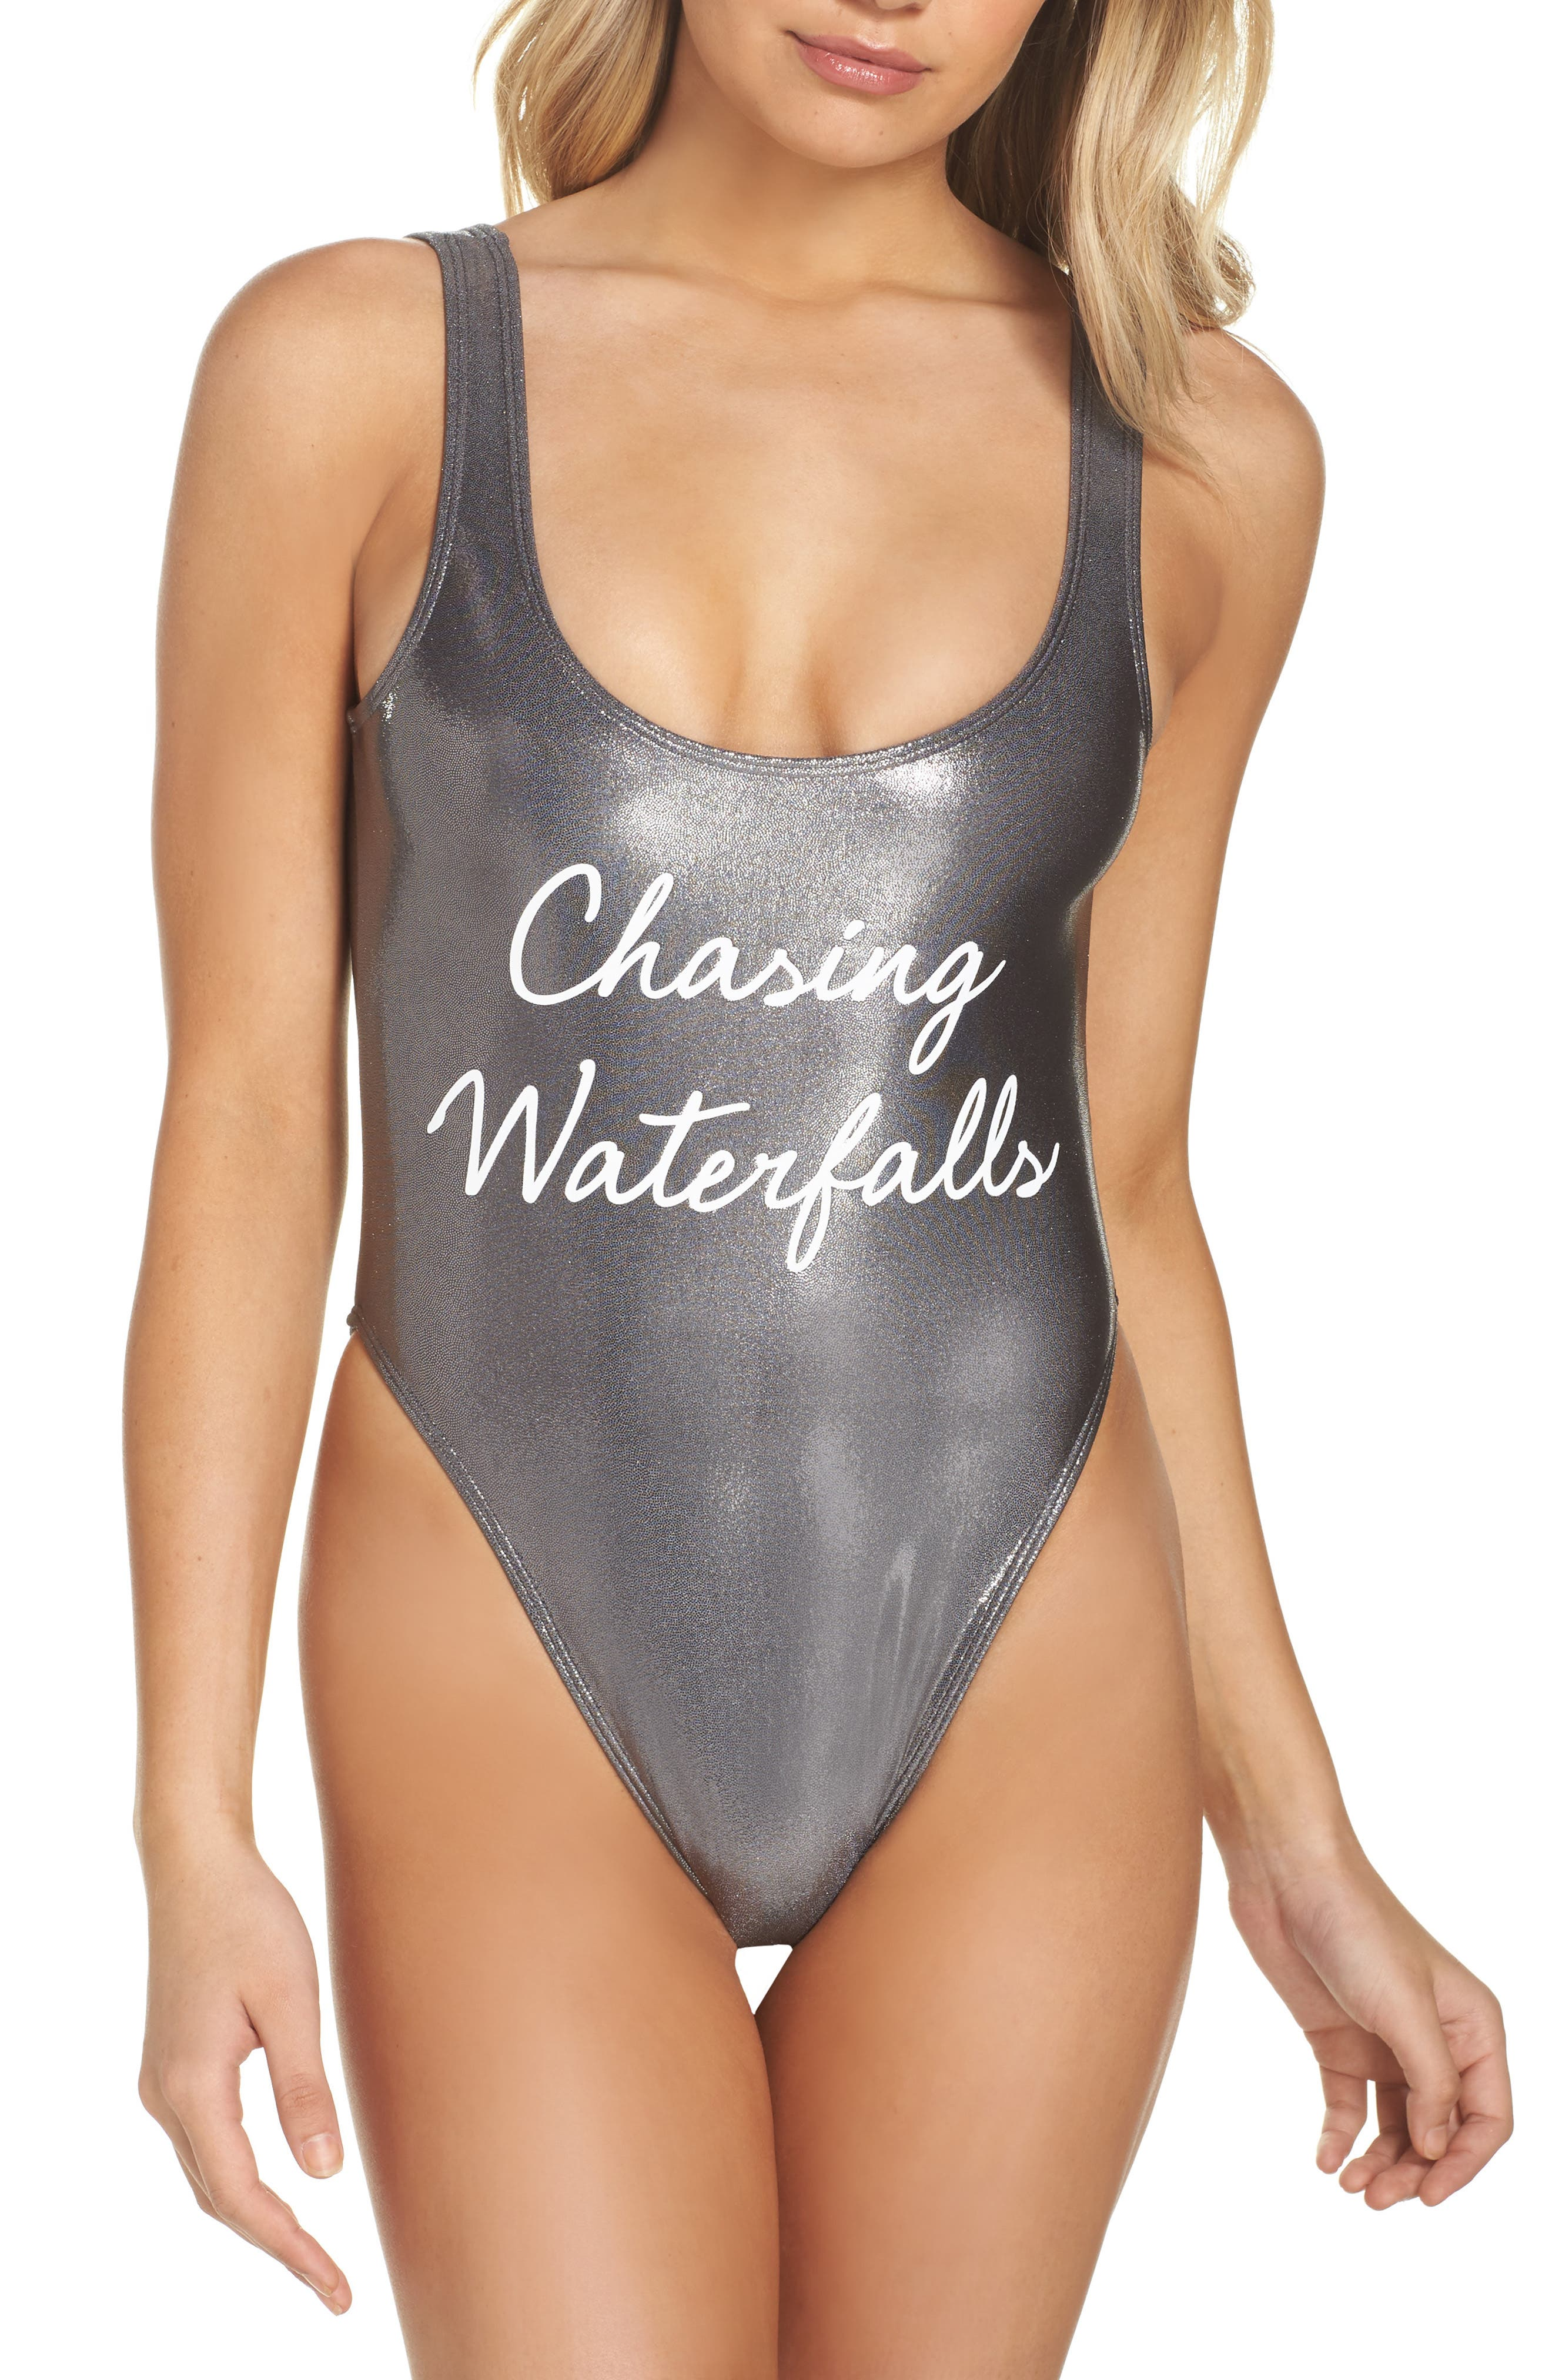 Private Party Chasing Waterfalls Metallic One-Piece Swimsuit